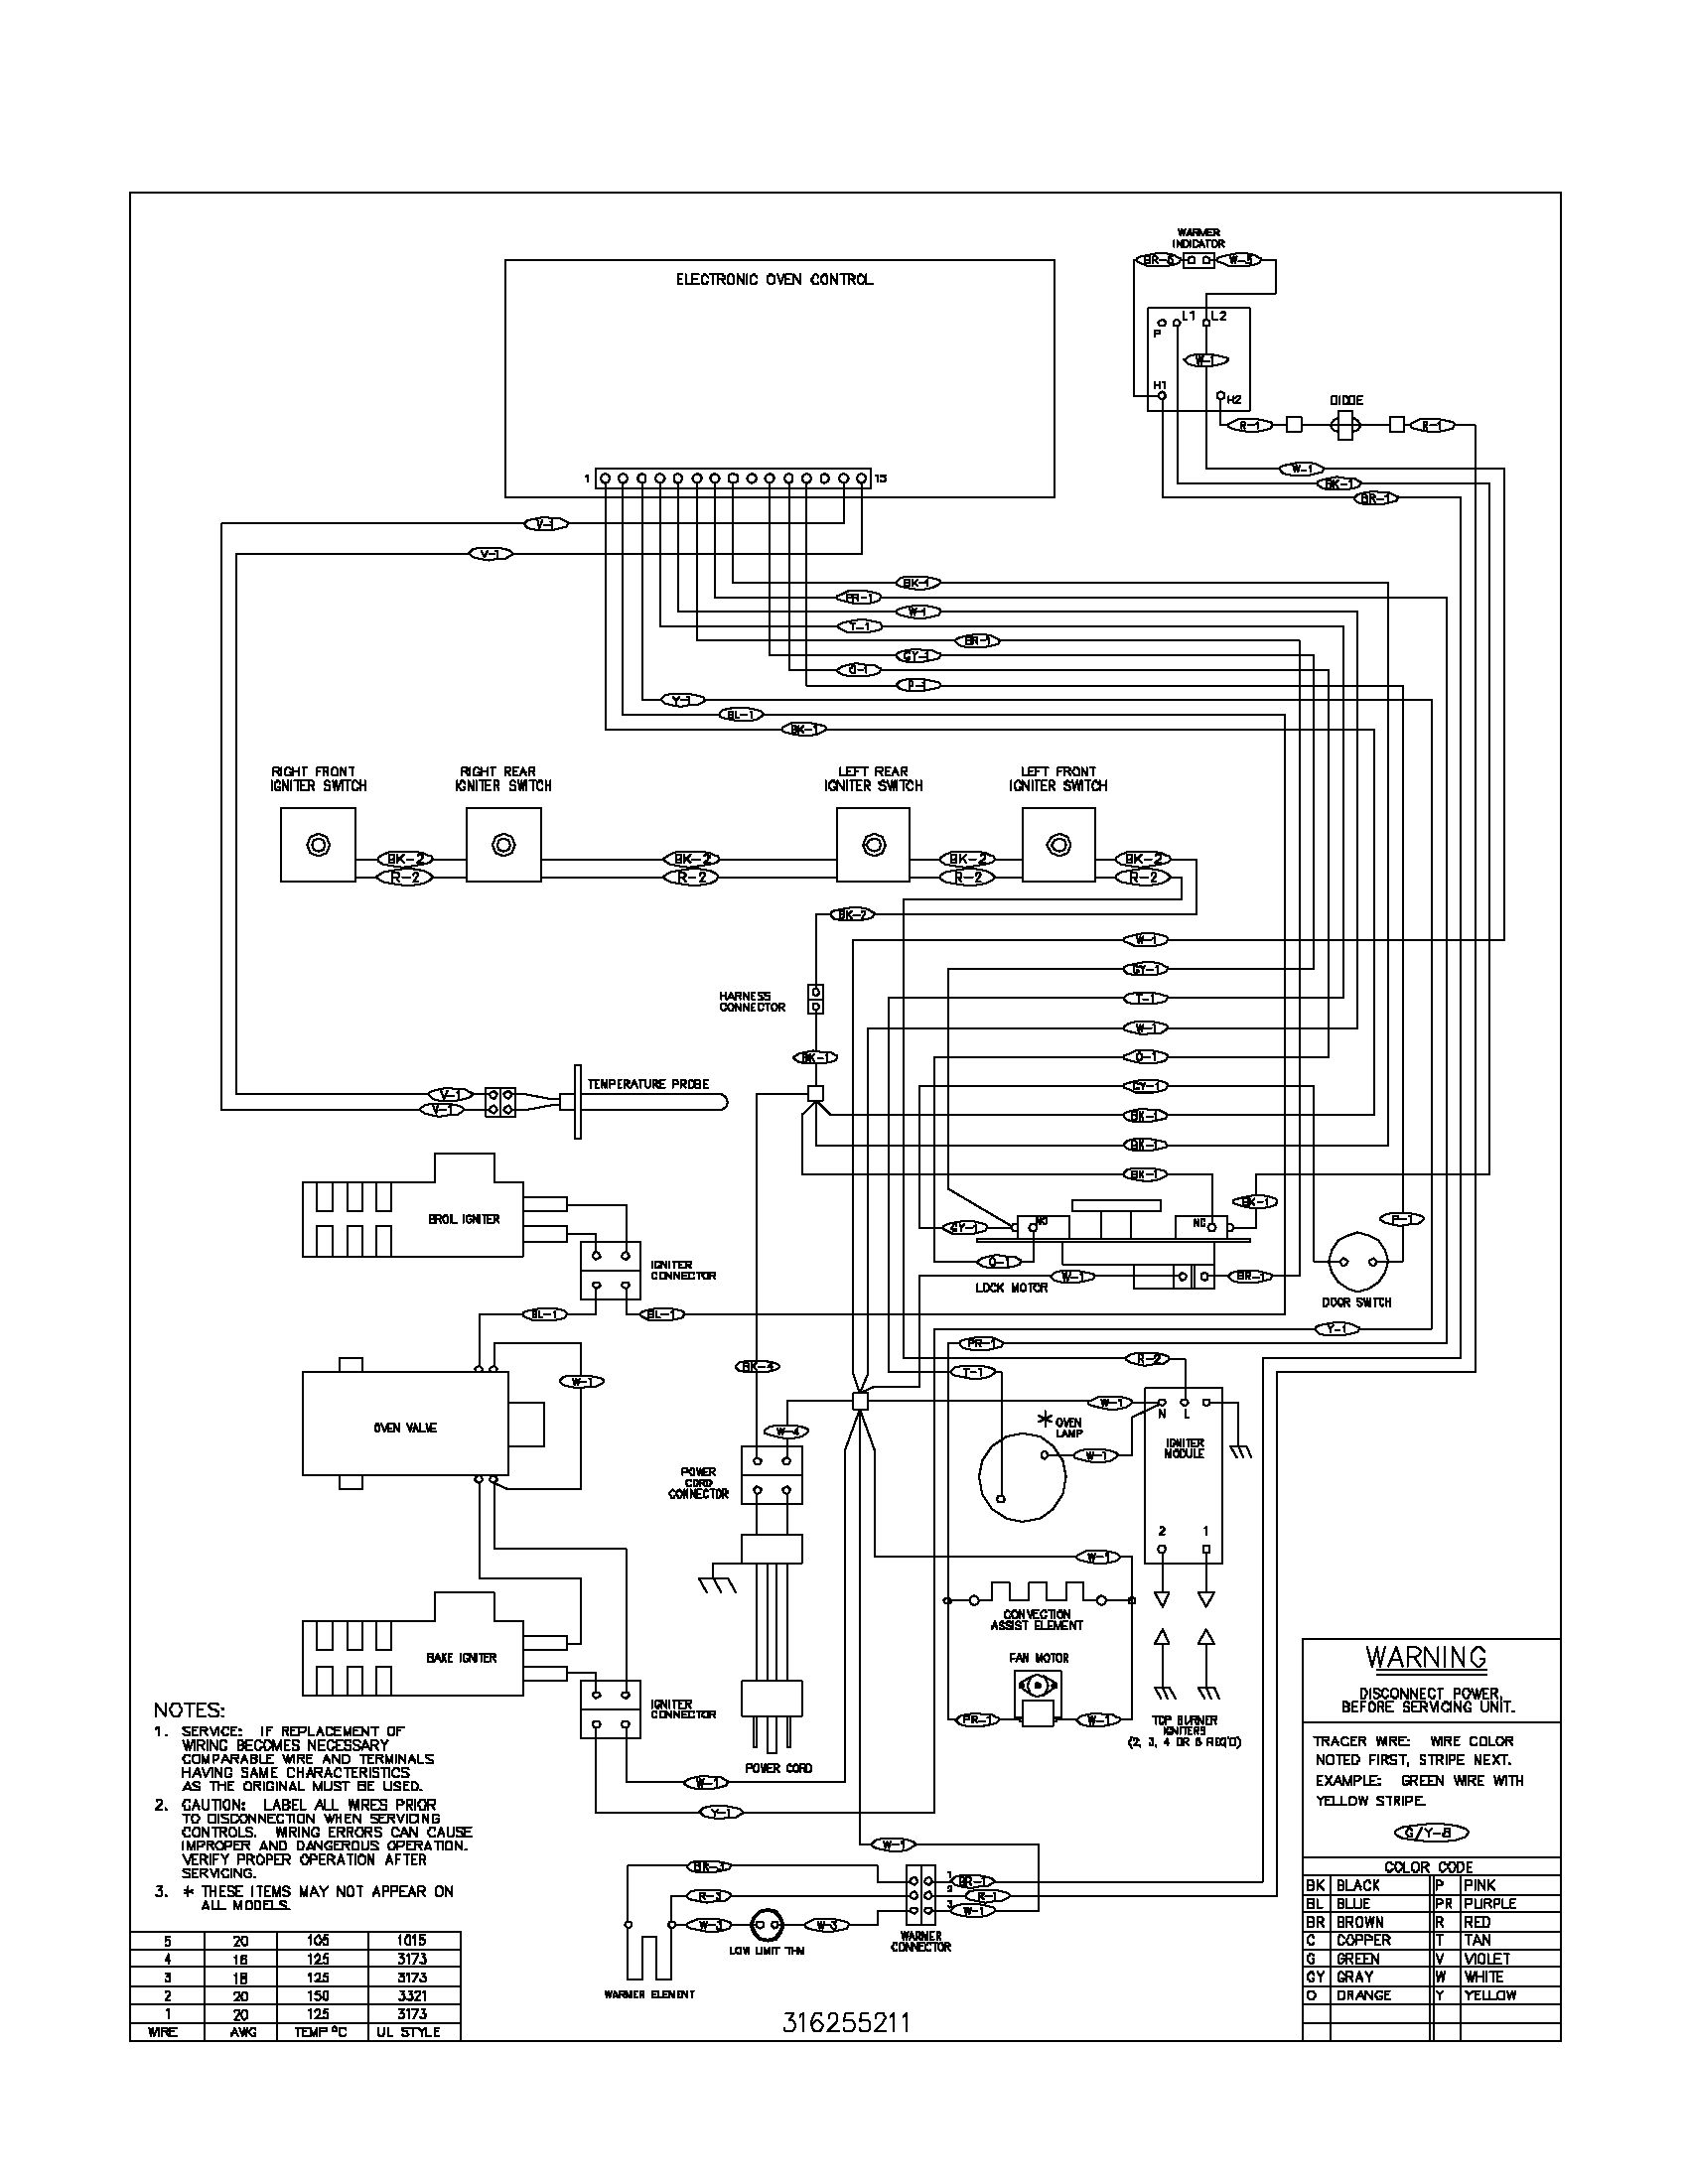 wiring diagram parts 100 [ kenmore dishwasher wiring diagram ] kenmore whirlpool wiring schematic for at gsmx.co